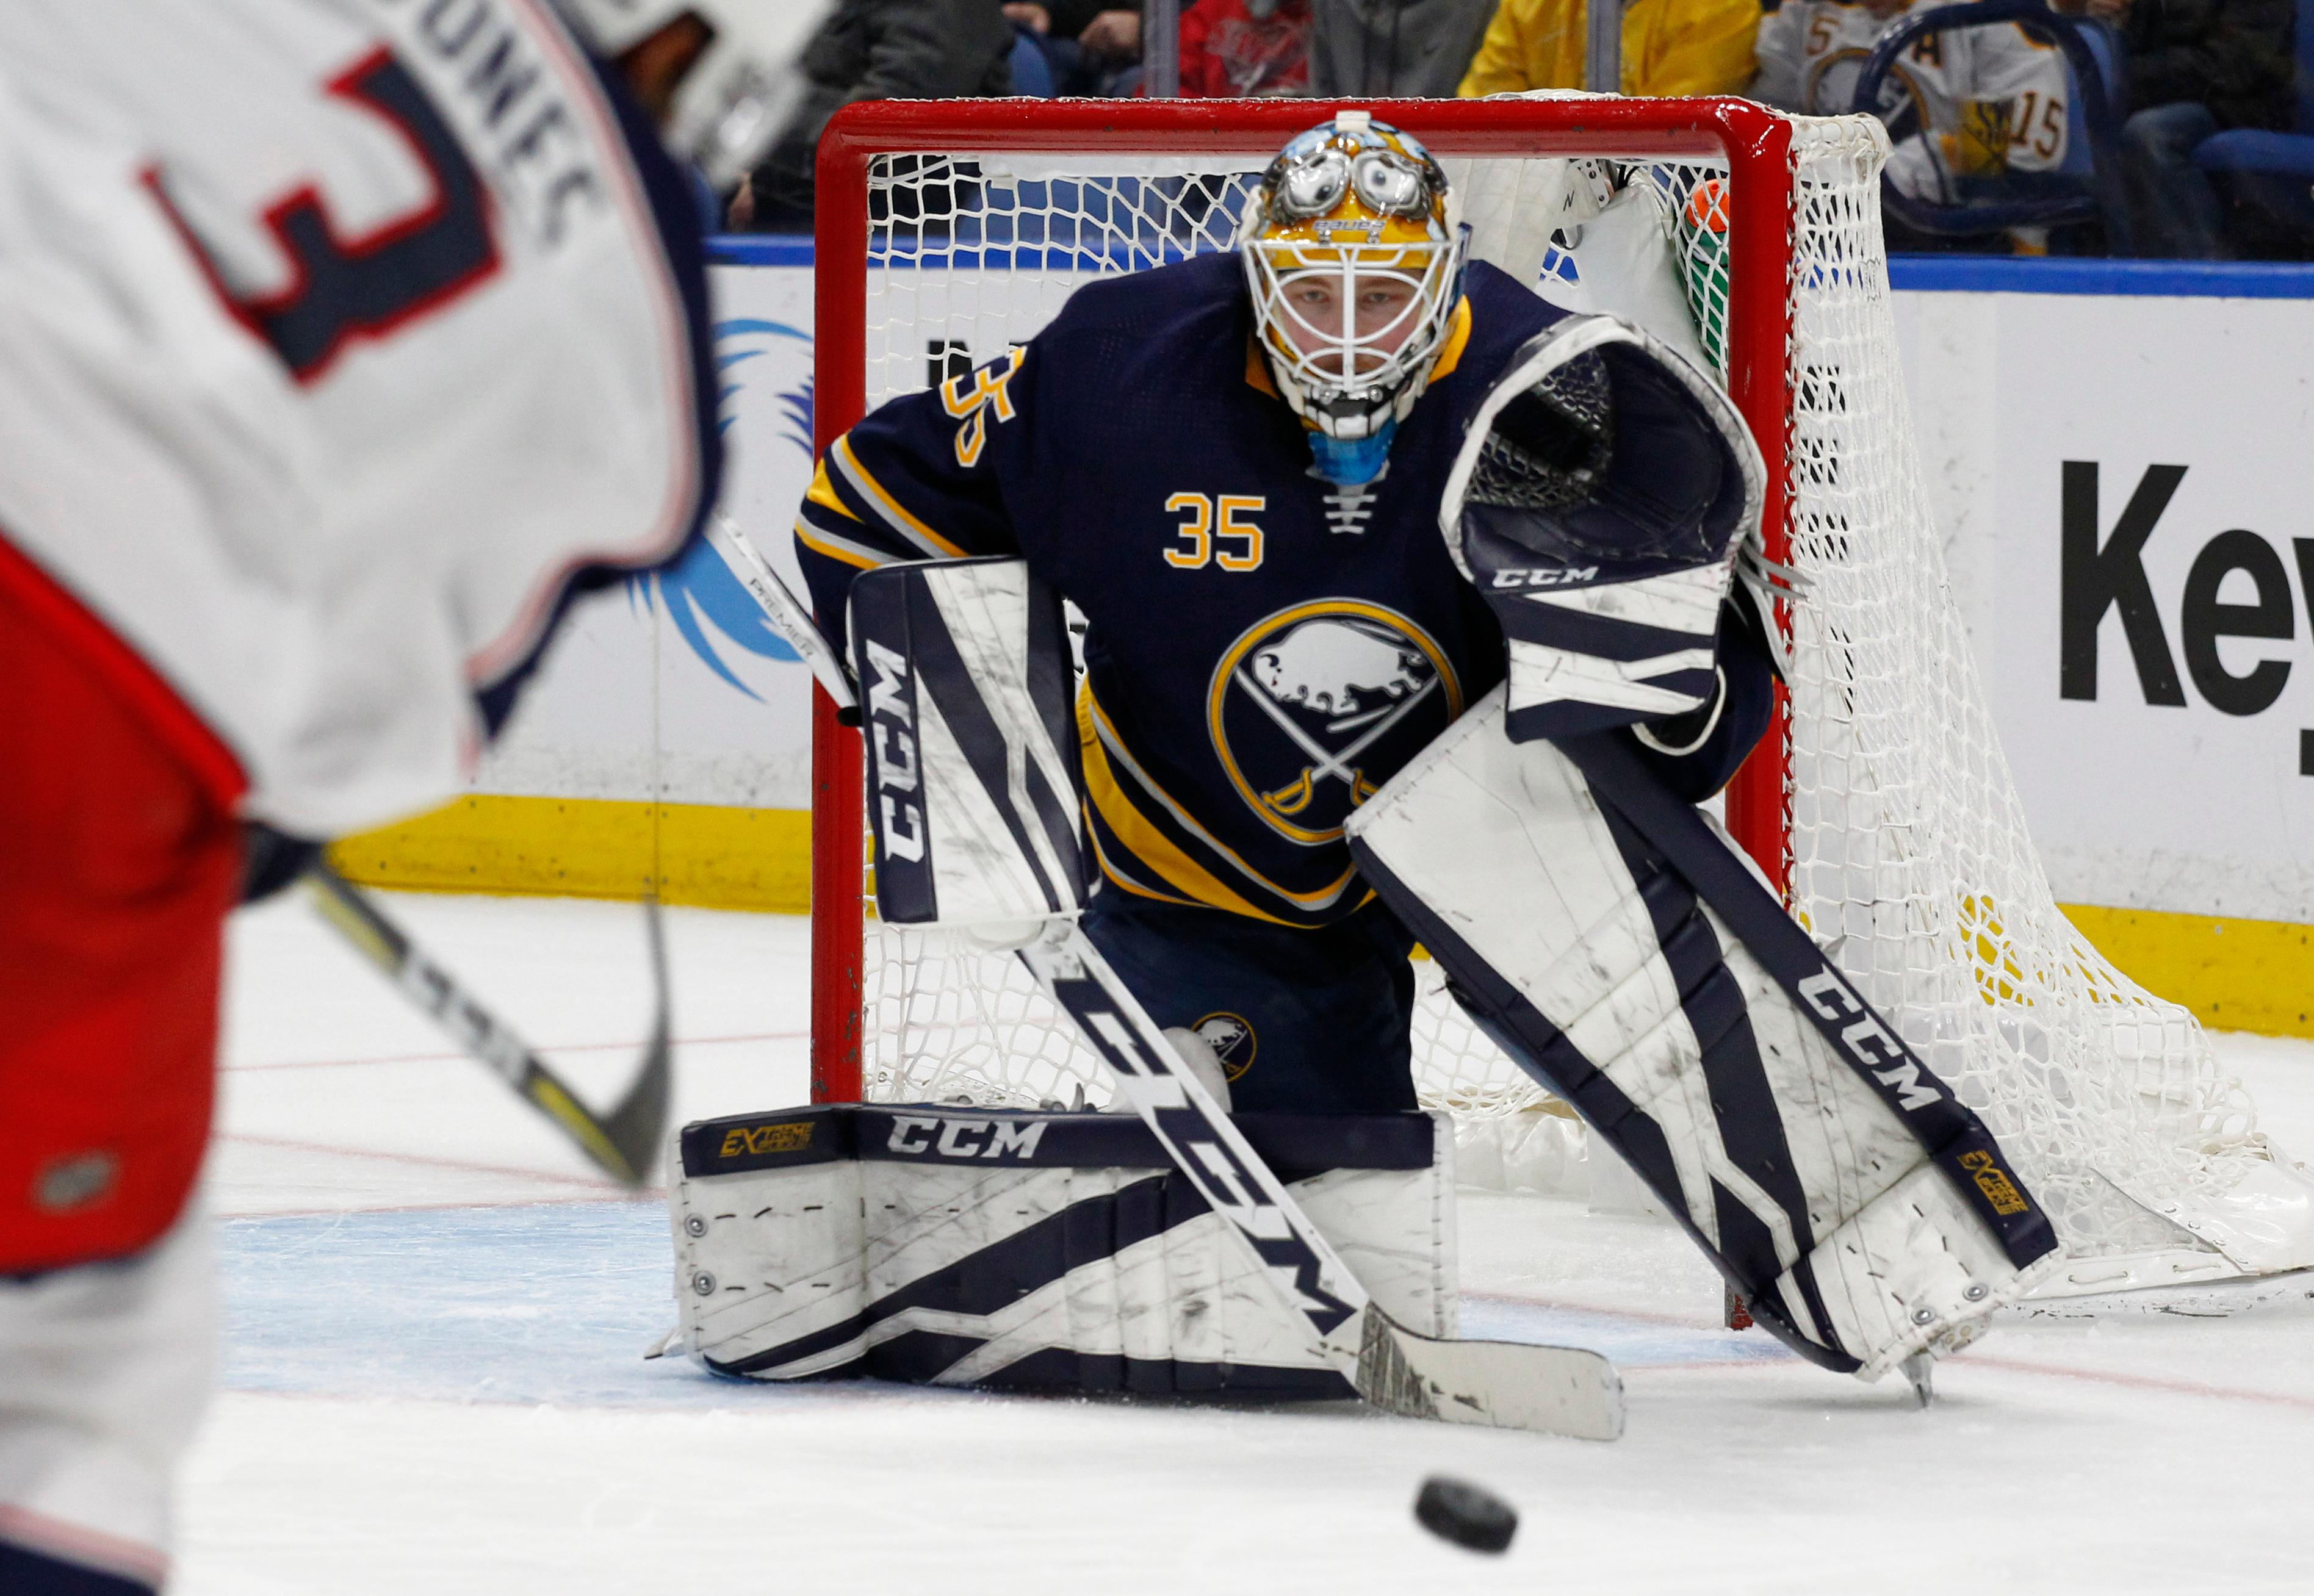 Buffalo Sabres goalie Linus Ullmark (35) watches the puck after a shot by the Columbus Blue Jackets during the second period of an NHL hockey game Thursday, Jan. 11, 2018, in Buffalo, N.Y. (AP Photo/Jeffrey T. Barnes)